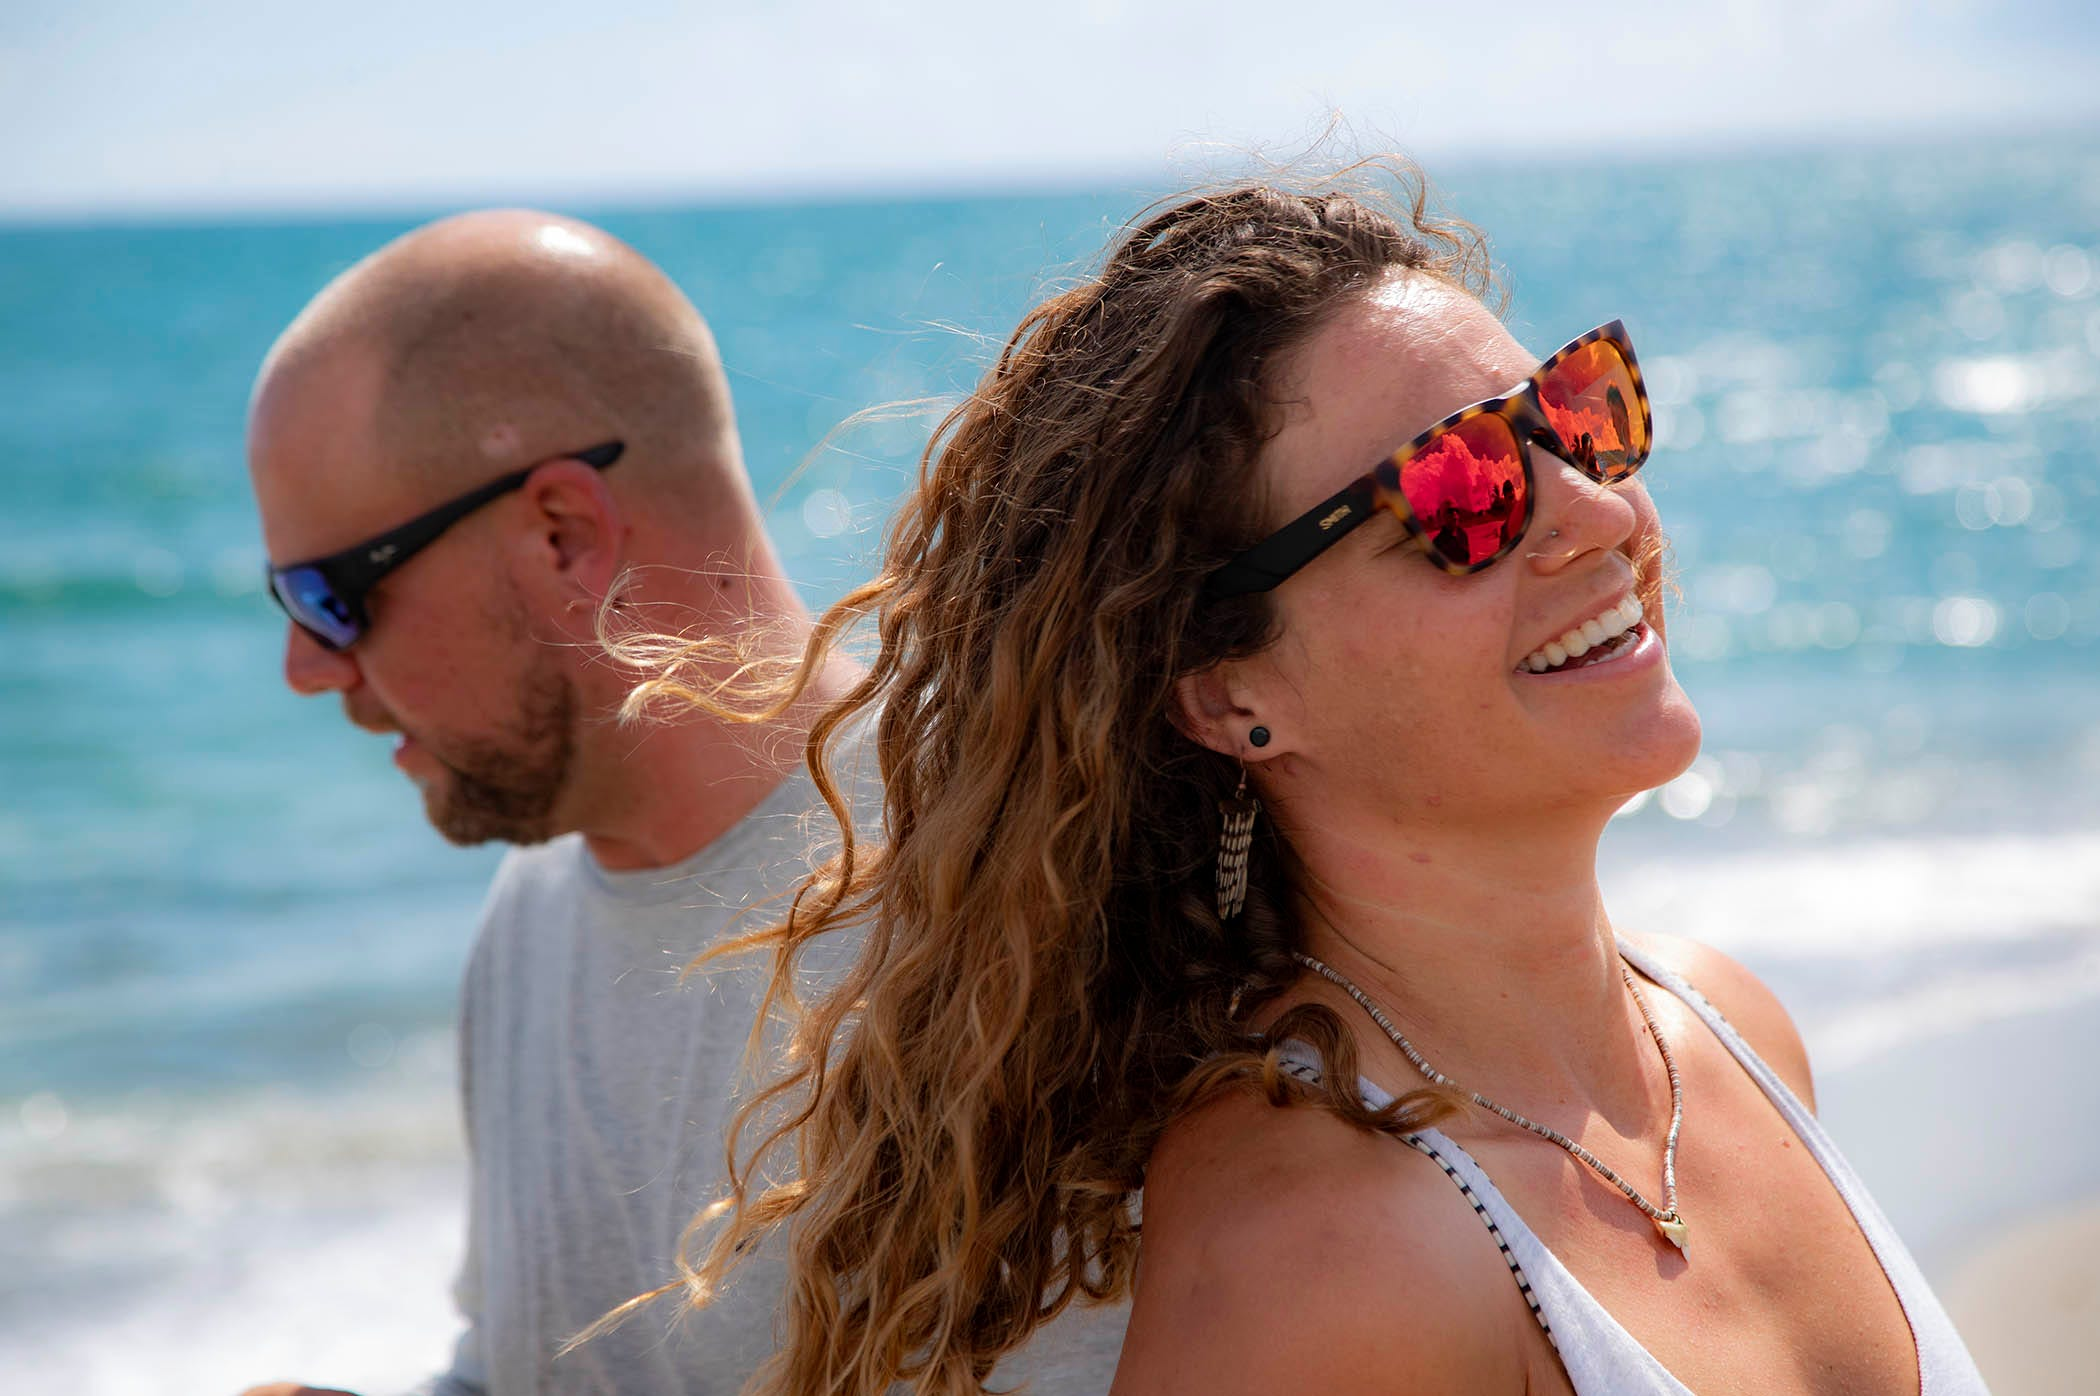 Christine Raininger, right, and Andy Earl helped save Carter Viss' life when the marine biologist was hit by a boat in the ocean last Thanksgiving Day. Viss was snorkeling near The Breaker's Reef when a boat severed his arm and damaged all of his limbs. Earl kept Viss afloat and Raininger tied a tourniquet after Viss watched his arm fall to the bottom of the sea.